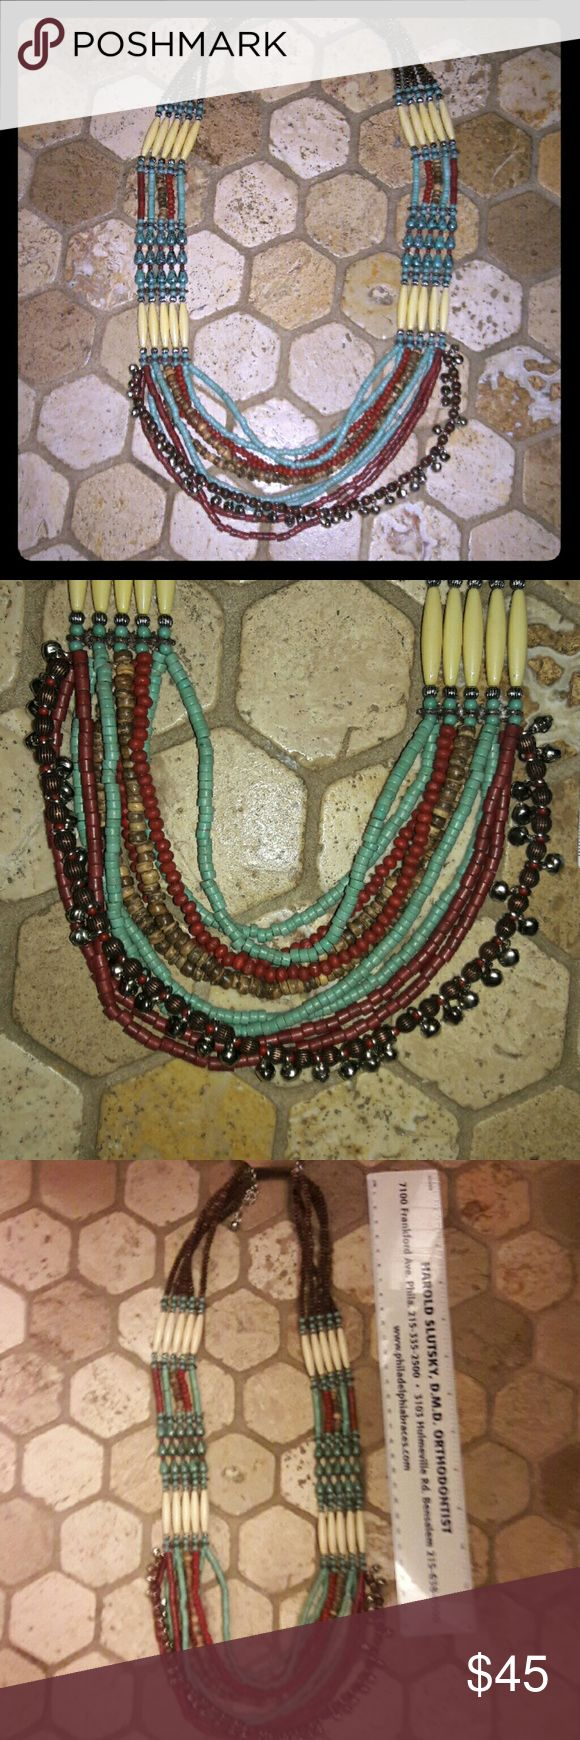 Multi-colored Five strand beaded Festival necklace A beautiful 5 stranded beaded necklace with a lobster clip closure... Turquoise and Bone white ivory and maroon in color... has dangling beaded Bell like chain on the last round as shown in pics... Any questions please ask... Great for festivals... Or any occasion you could dress it up or down Treska Jewelry Necklaces